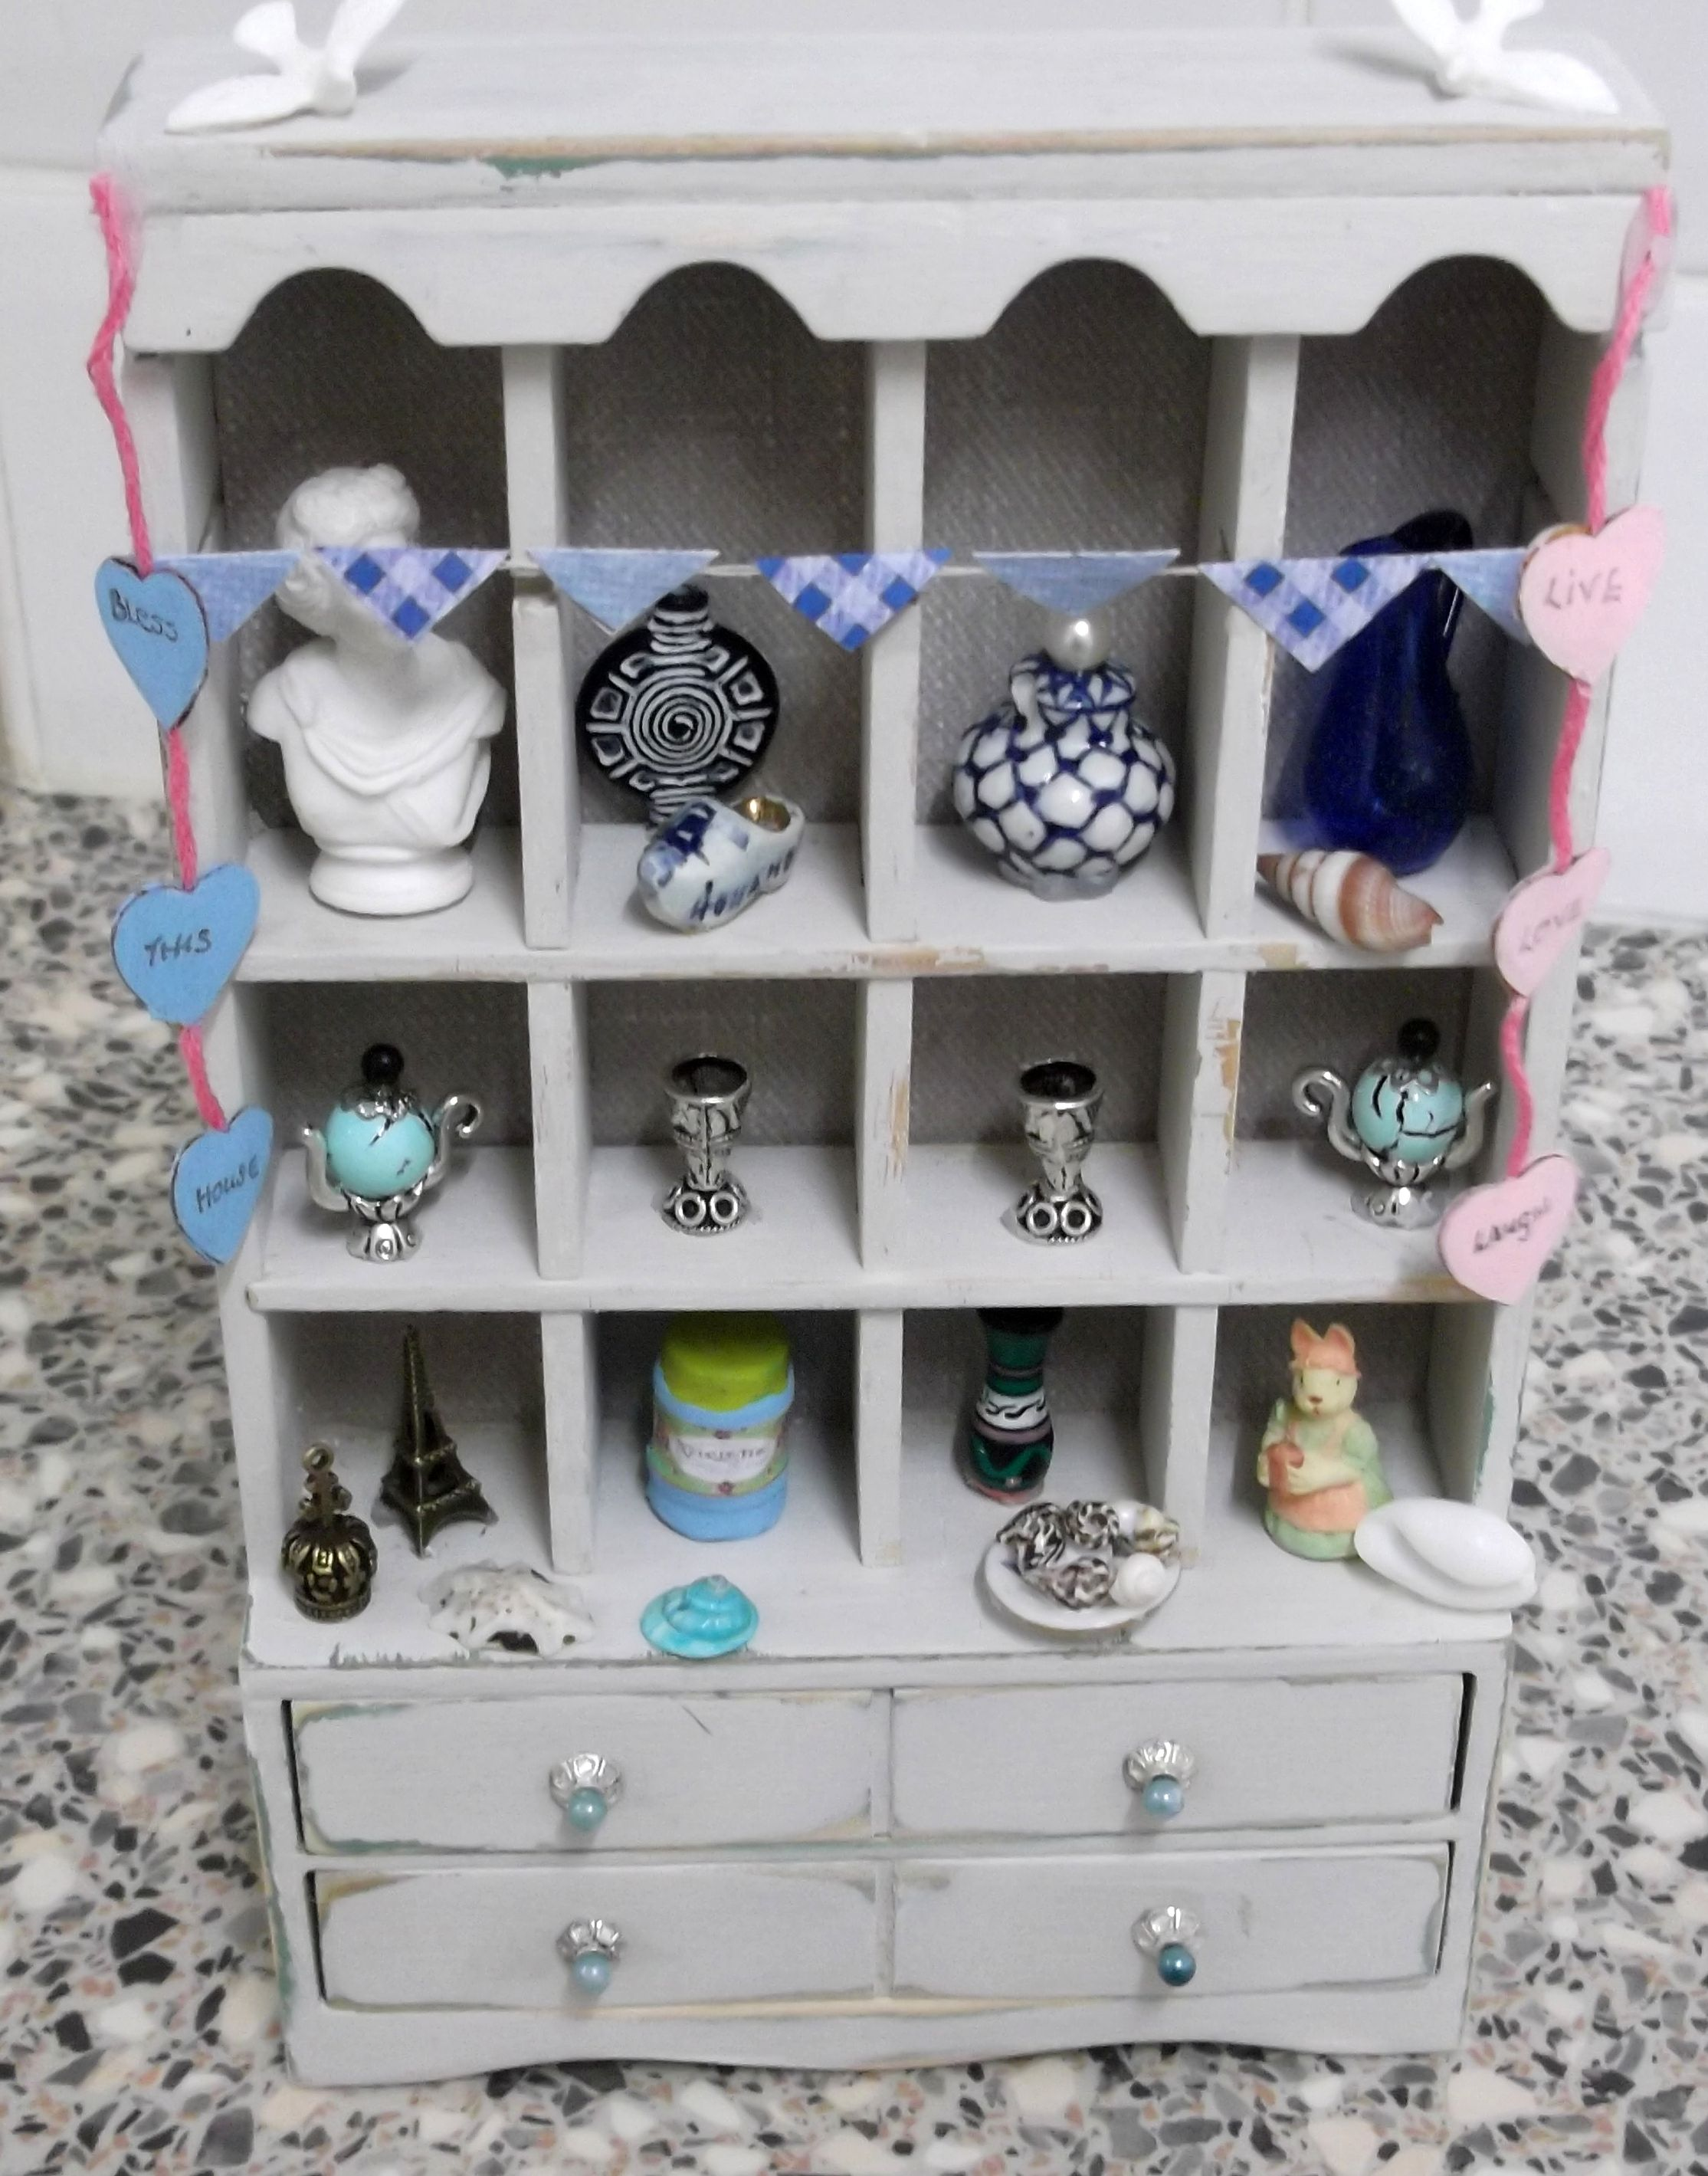 I made some of the objects on the shelves, unit distressed by |Debbie